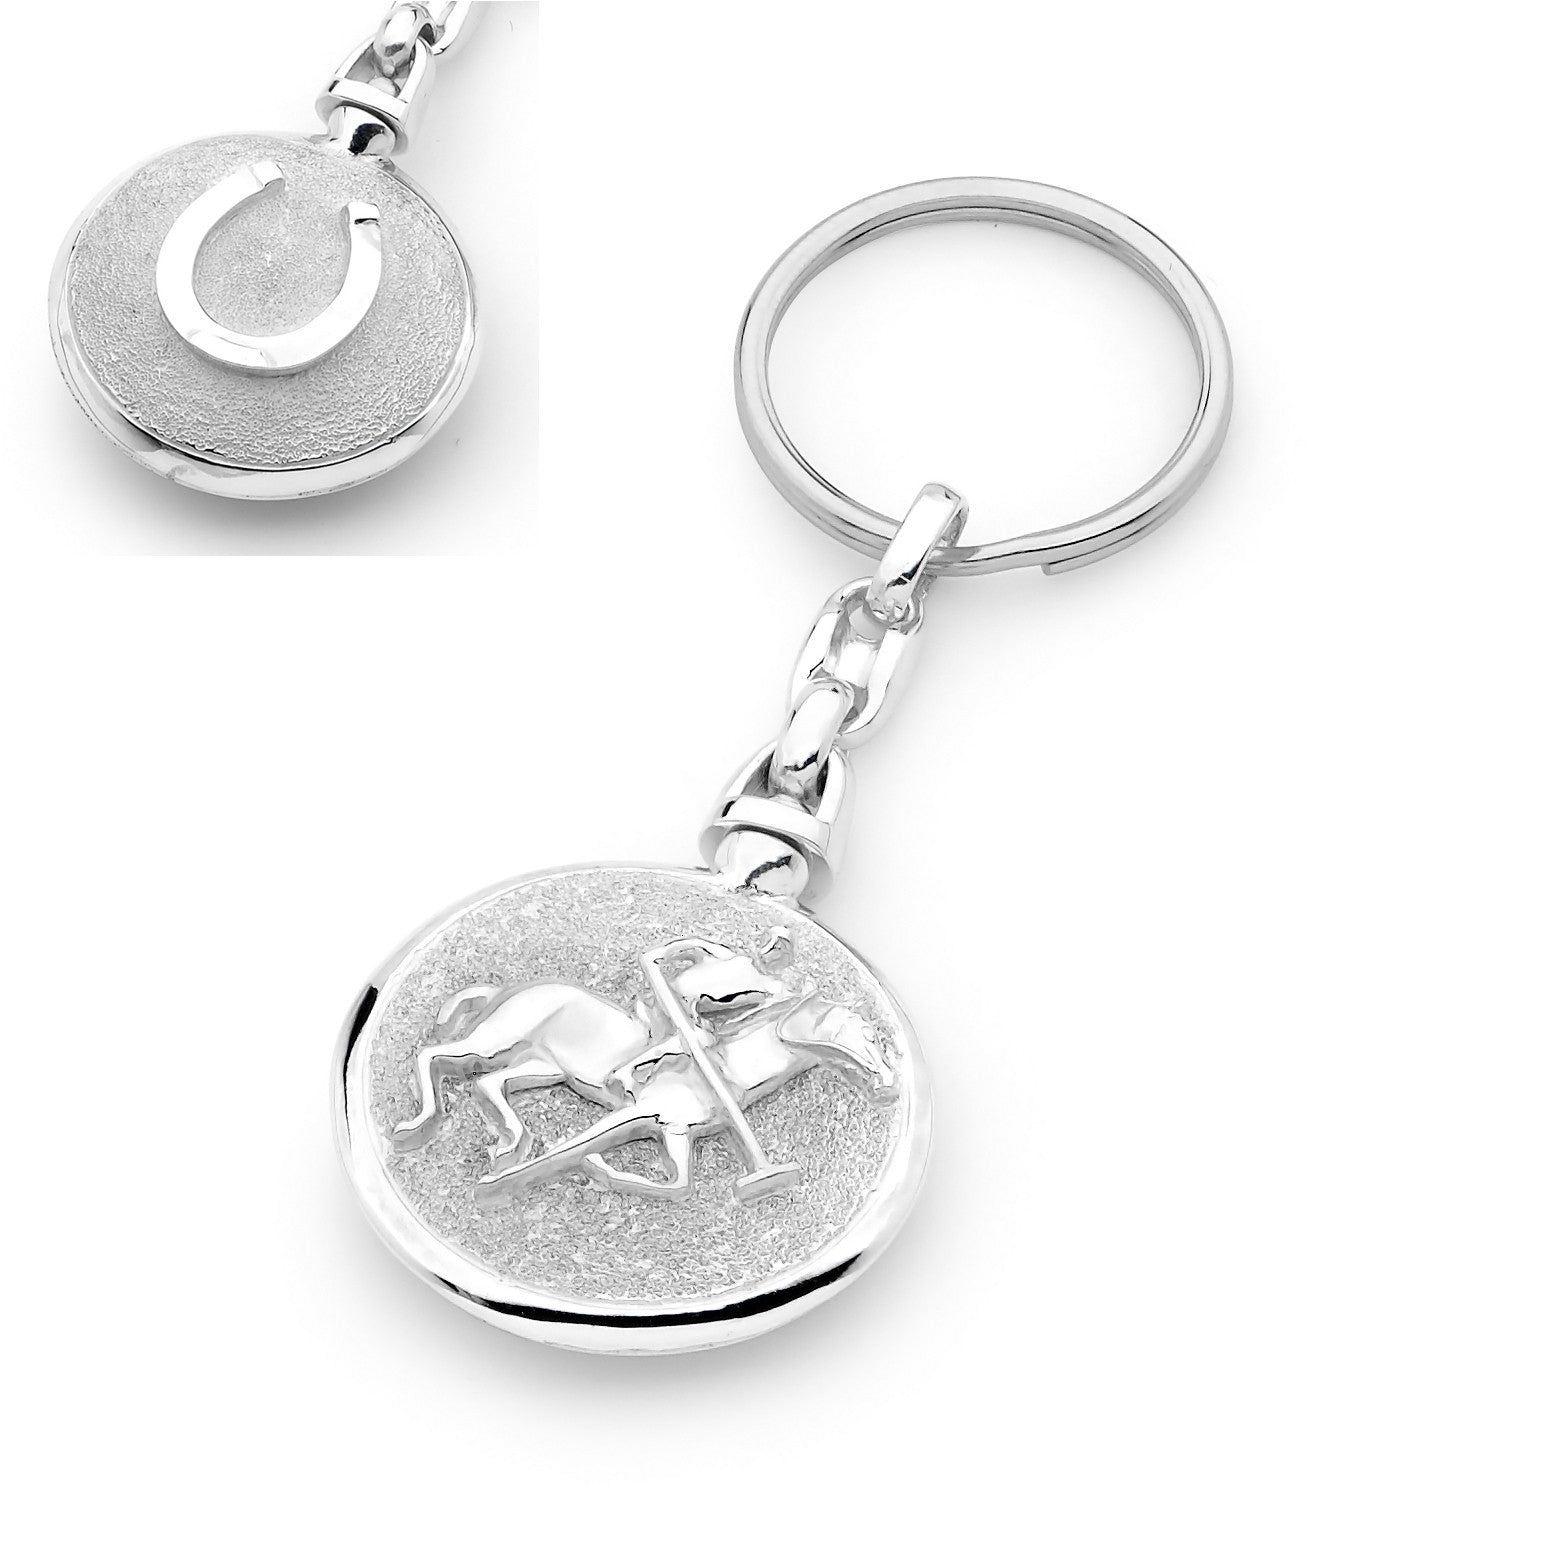 Polo Pony Key Ring